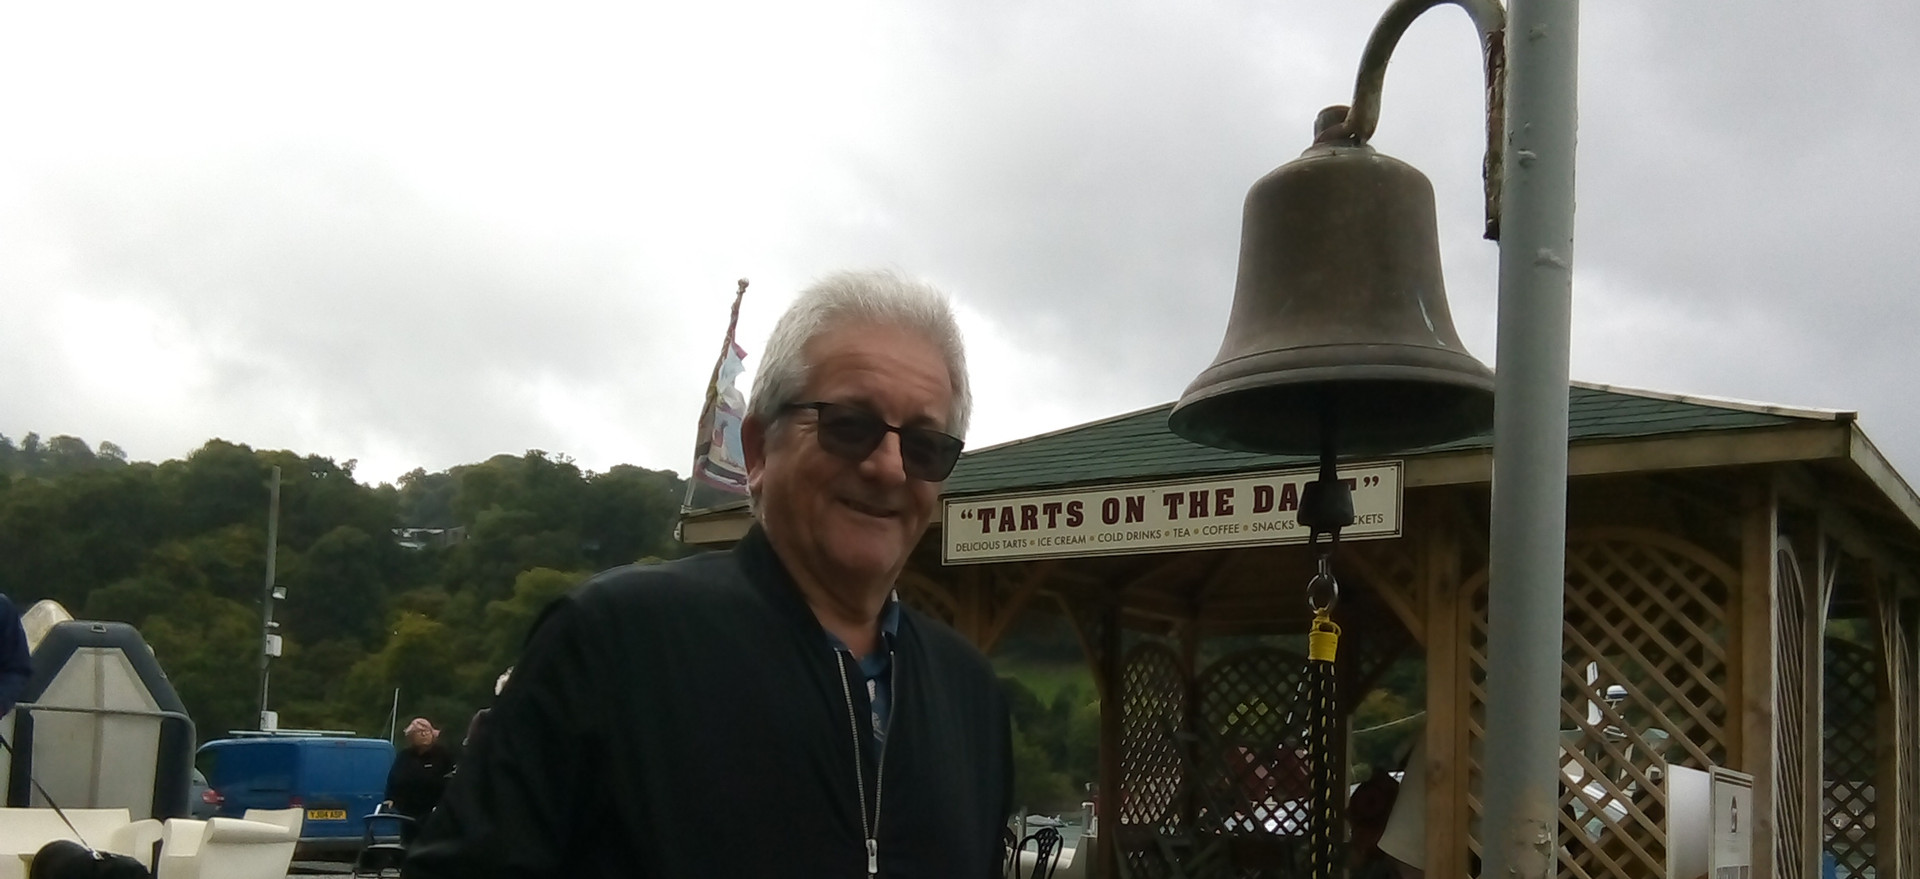 Steve with bell for ferry